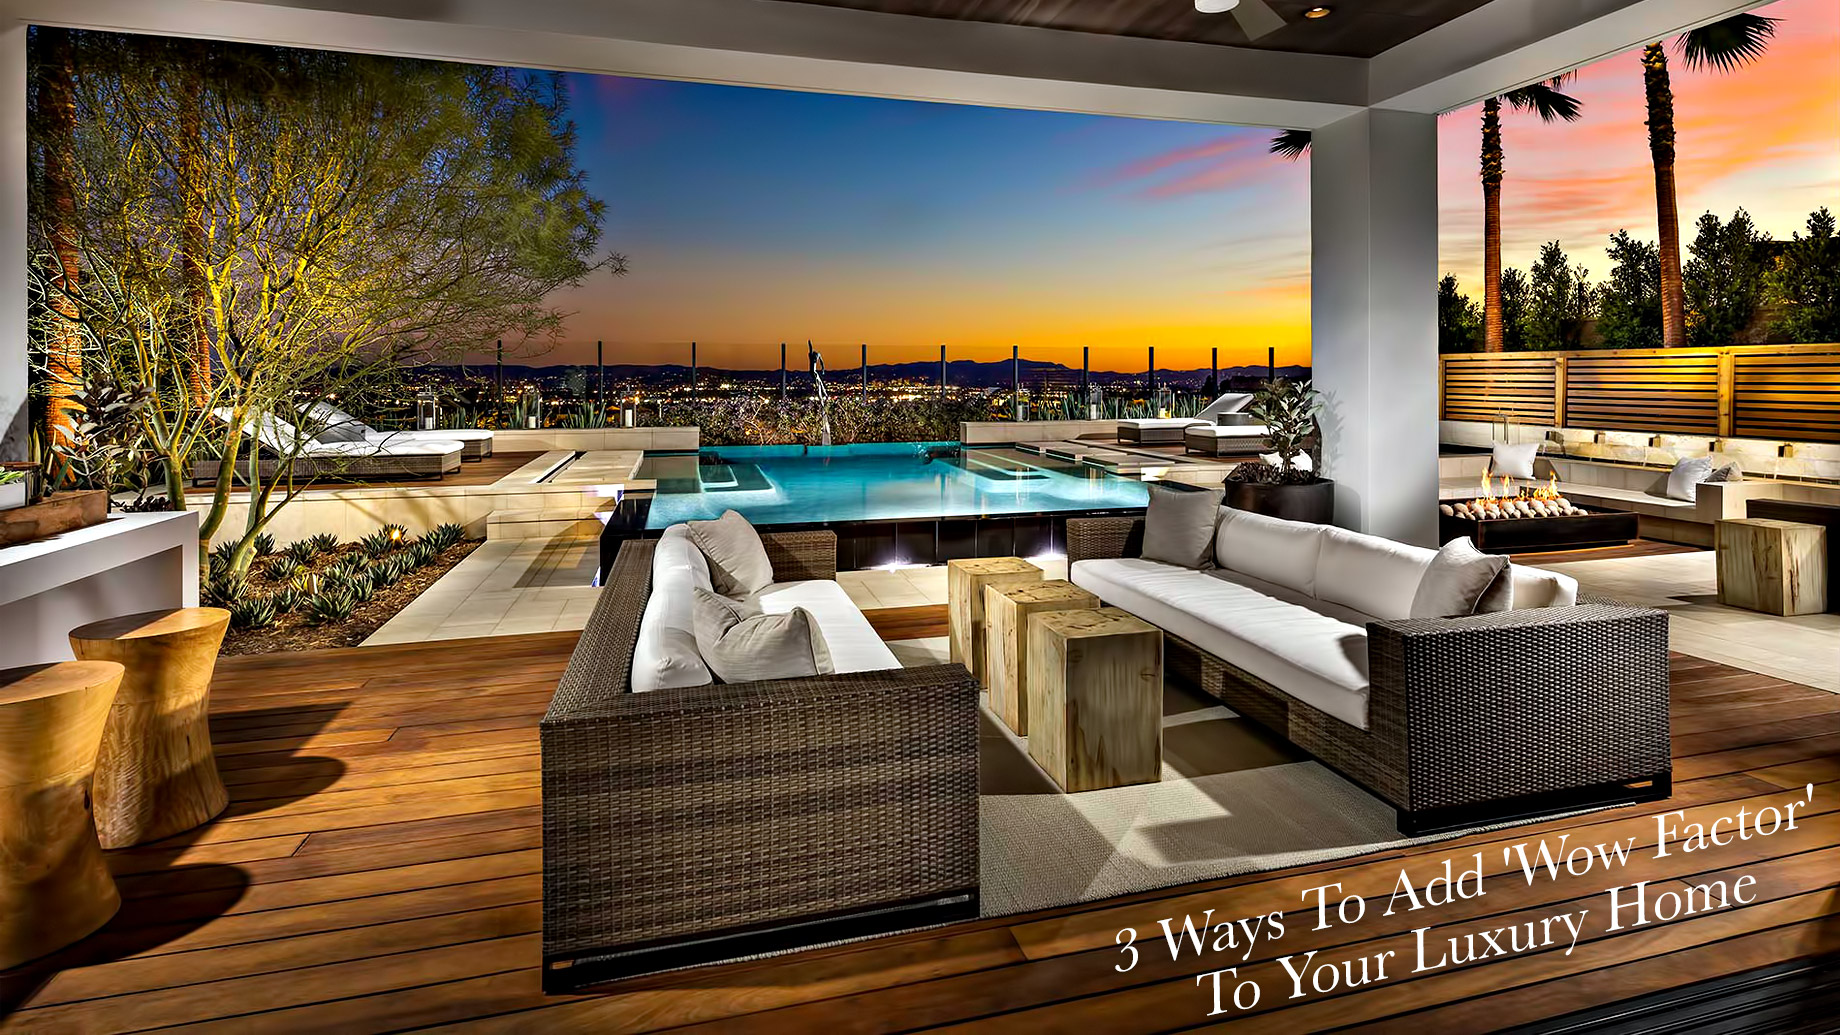 3 Ways To Add 'Wow Factor' To Your Luxury Home